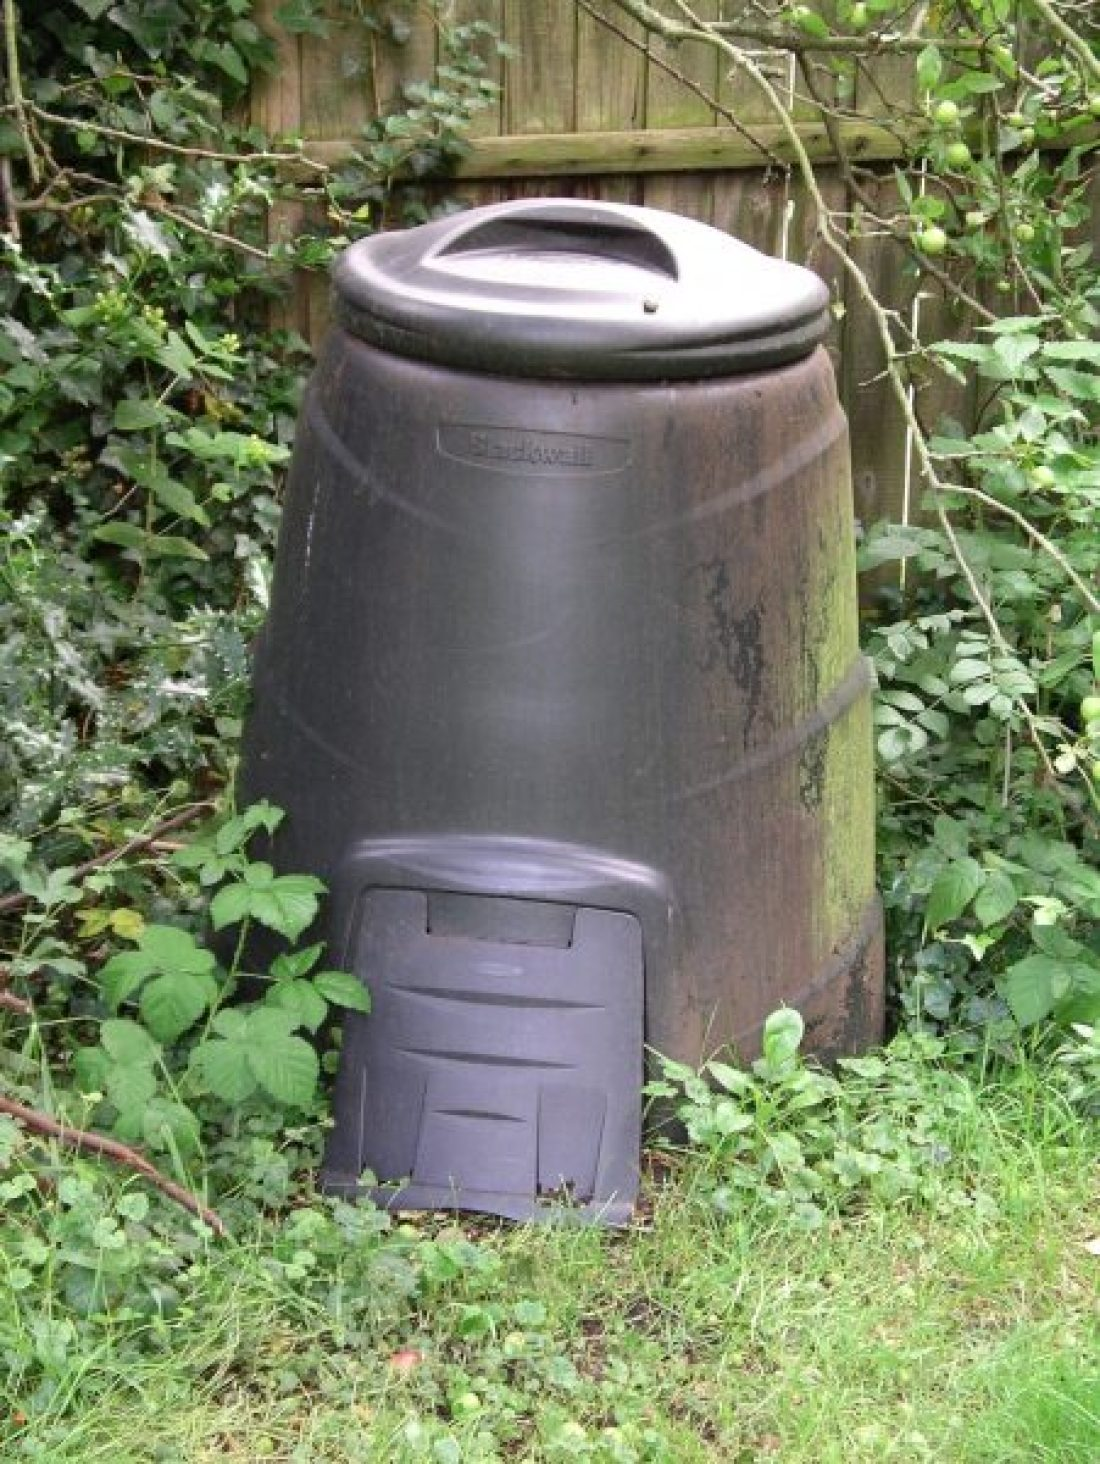 Composting to help save the planet